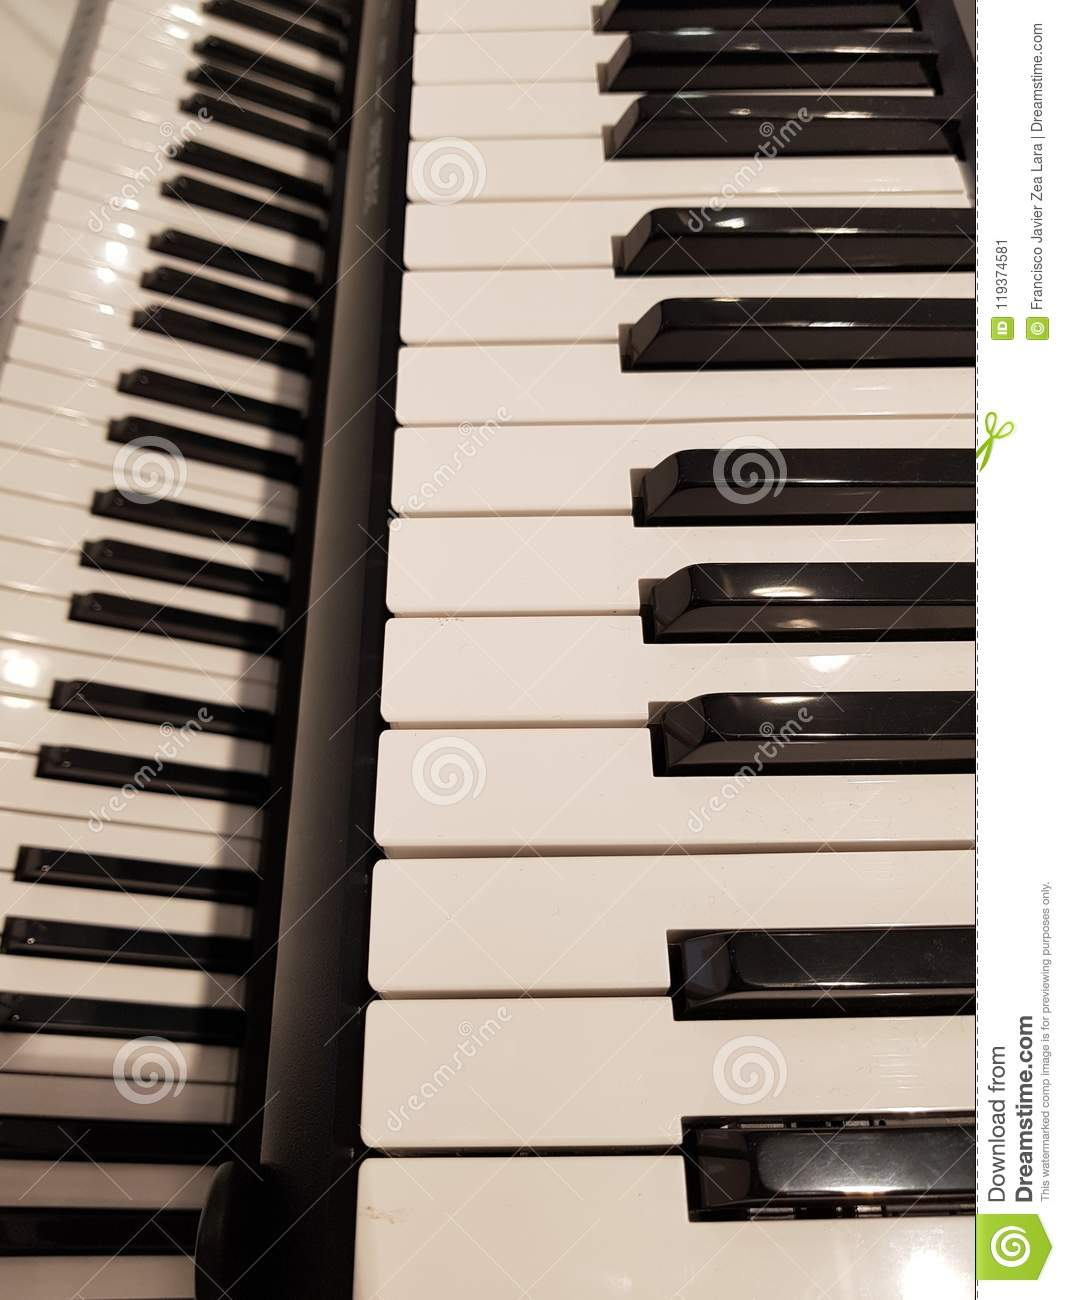 Approaching A Musical Keyboard, Background And Texture Stock Image